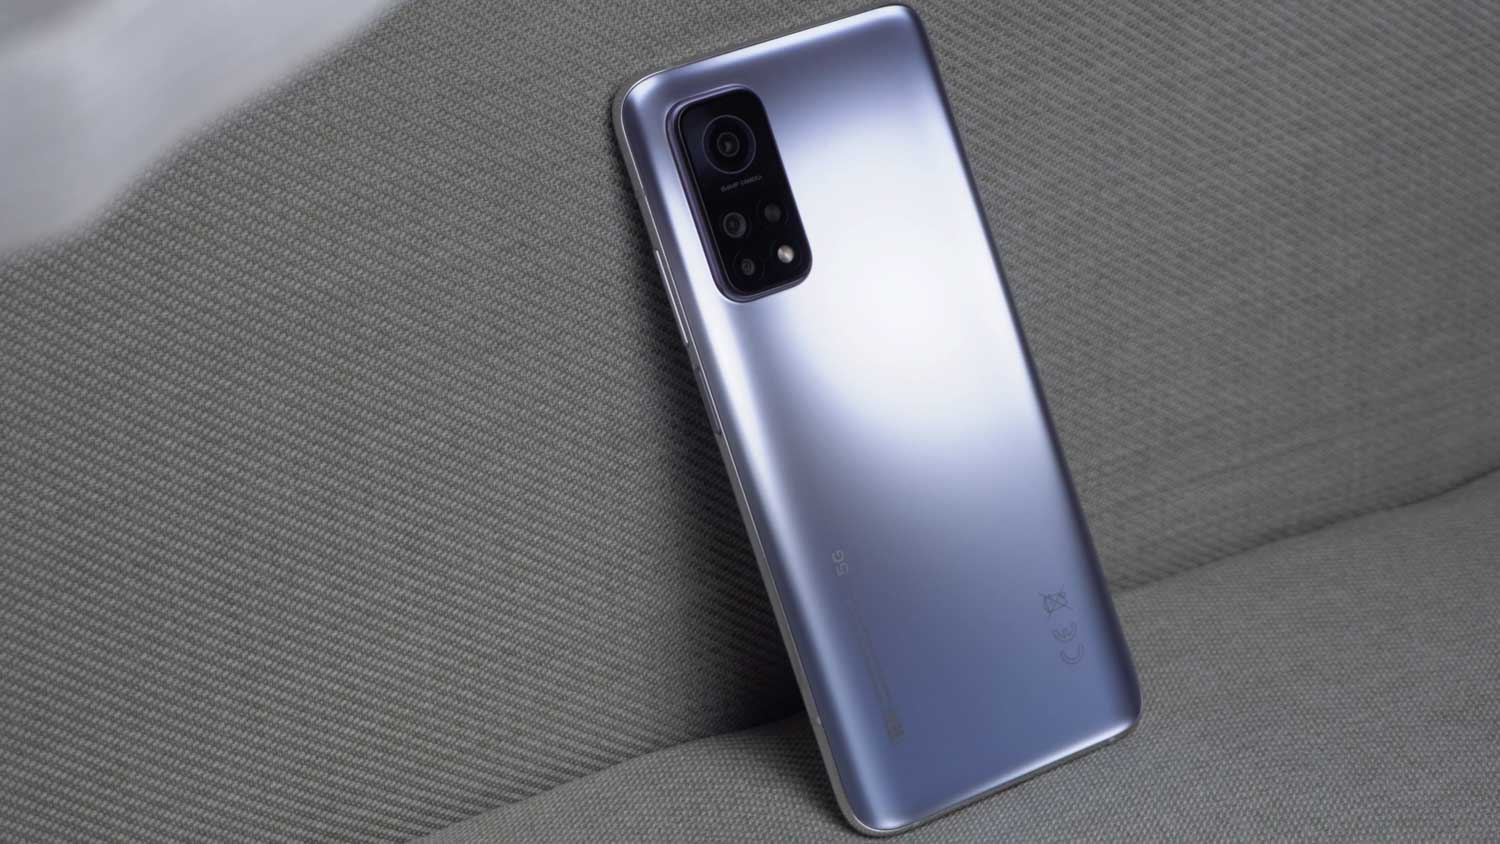 2020-phones-worth-buying-in-2021-under-php20000